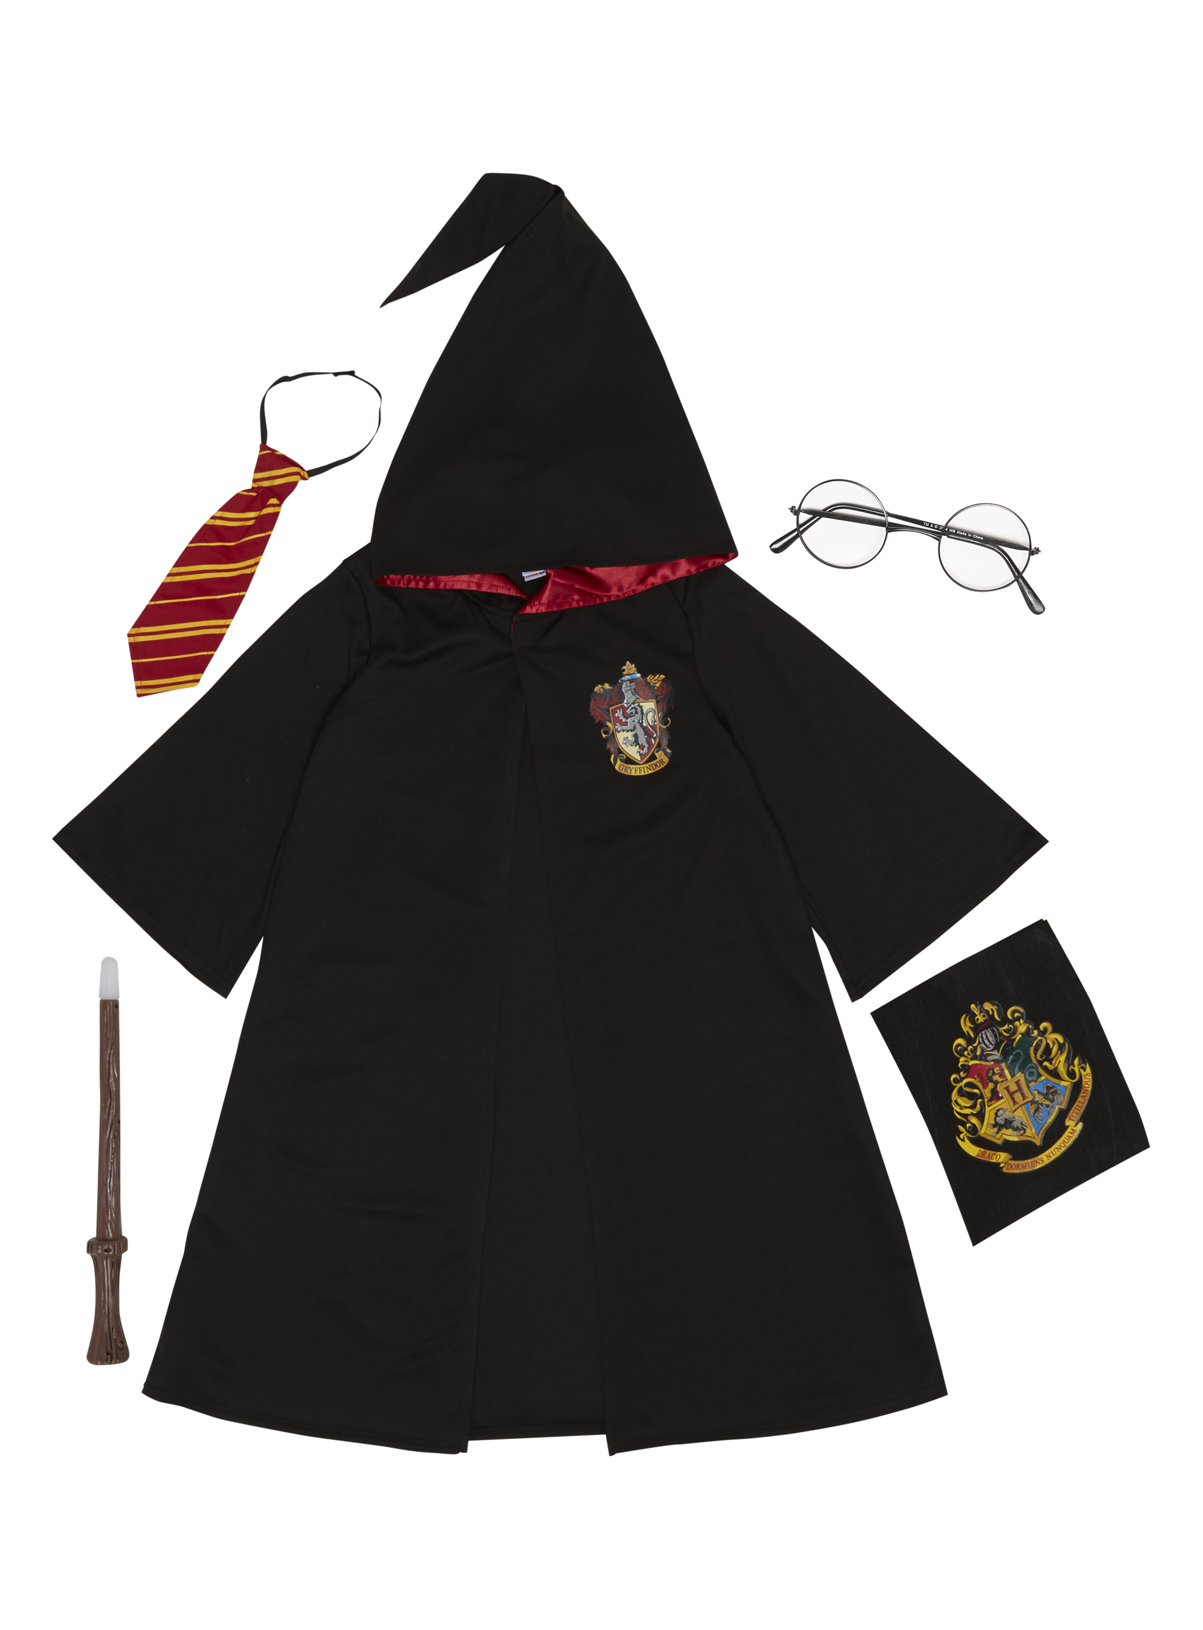 officially licensed harry potter fancy dress halloween. Black Bedroom Furniture Sets. Home Design Ideas